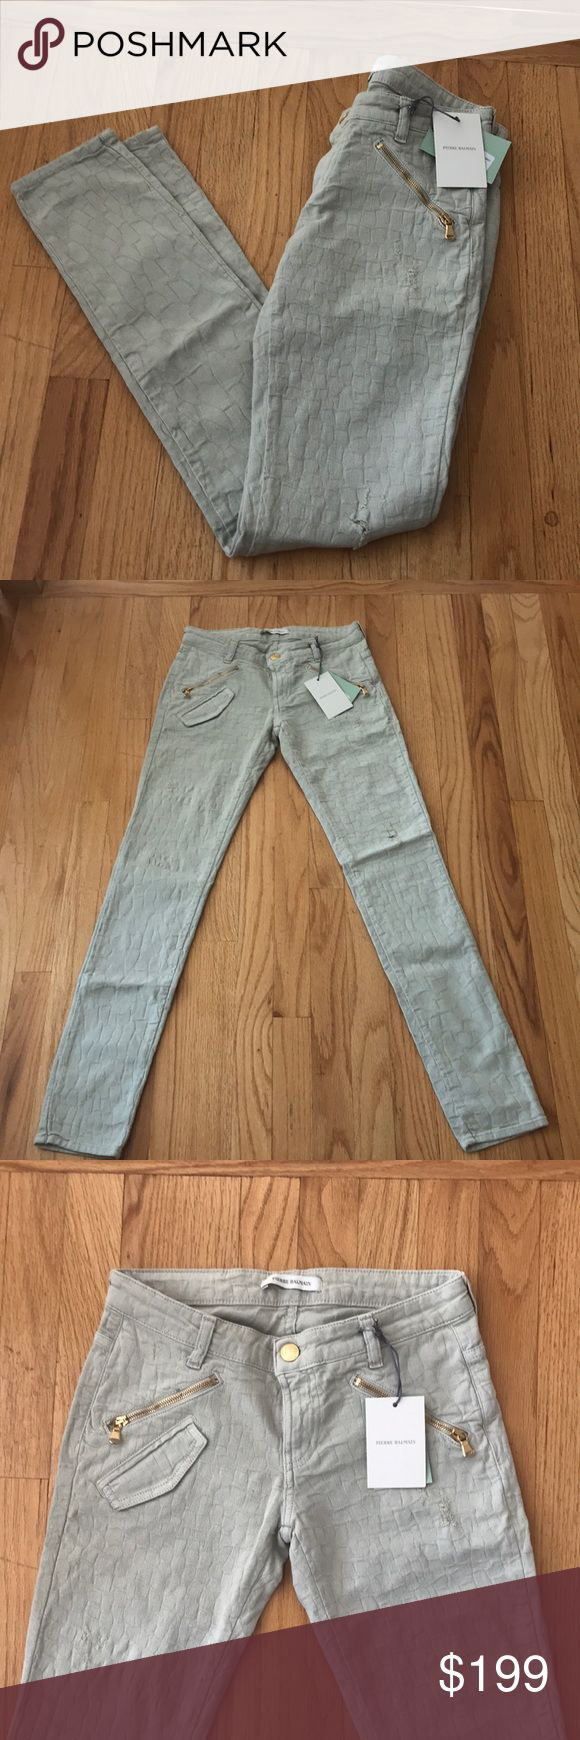 Pierre Balmain light tan jeans size 25 new Pierre Balmain Jeans. Skinny fit with gold hardware. They are a light tan in color. Size 25. Authentic. Inside Pierre Balmain label stitching undone on part of one side. No trades. Bundle with the Balmain handbag or boots!  Offer considered. Pierre Balmain Jeans Skinny